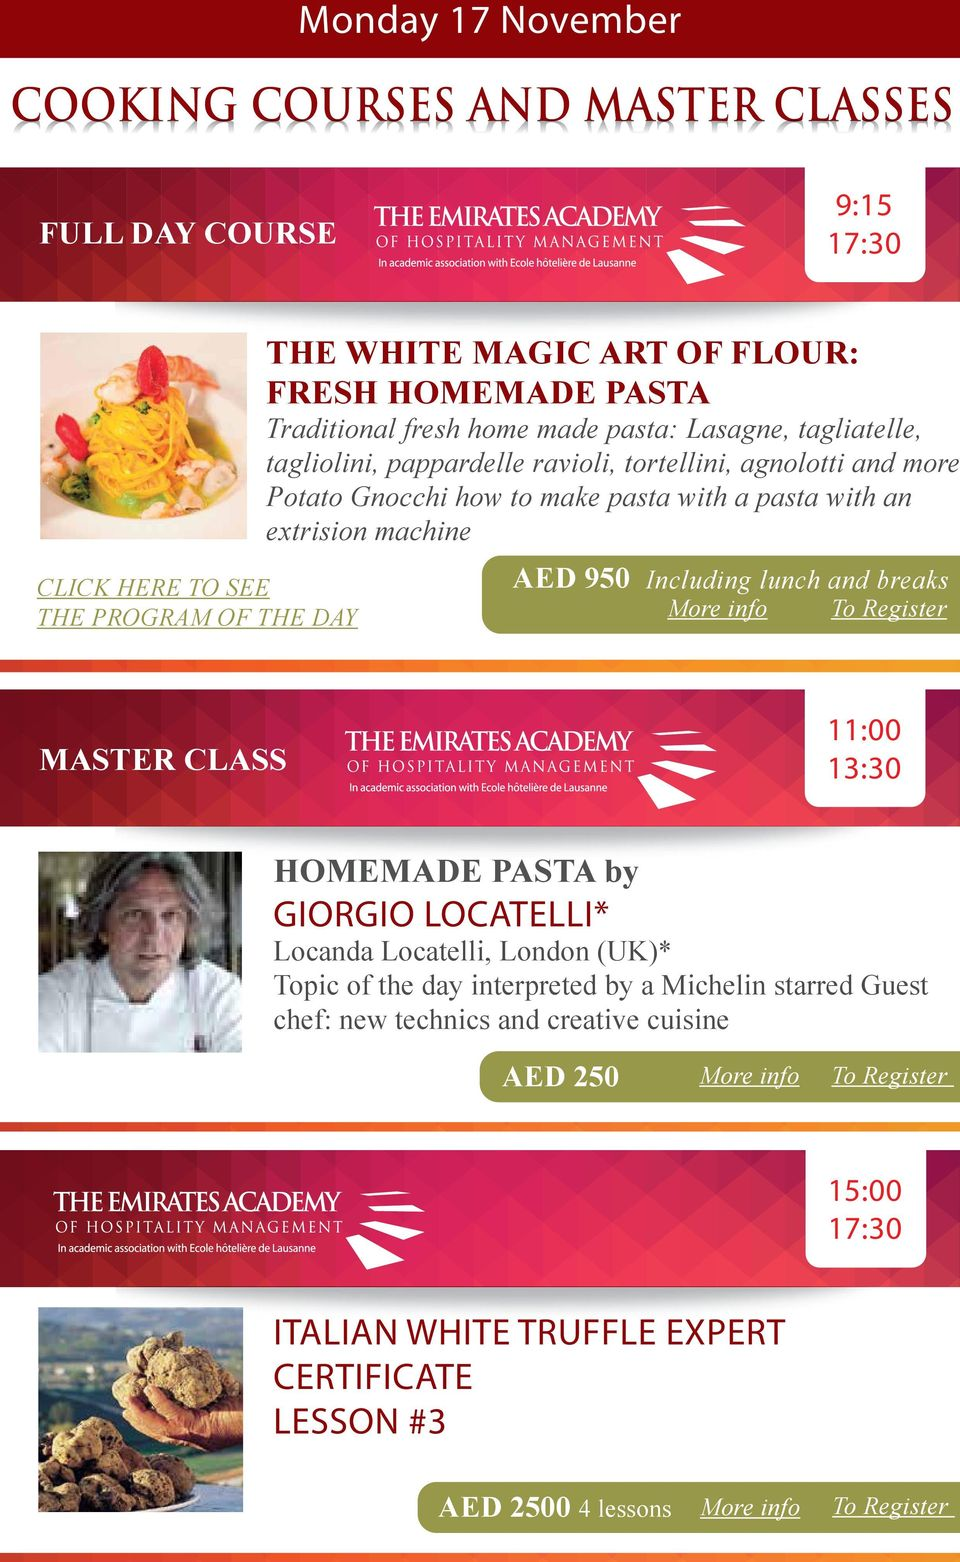 with a pasta with an extrision machine Including lunch and breaks MASTER CLASS 13:30 HOMEMADE PASTA by GIORGIO LOCATELLI* Locanda Locatelli, London (UK)* Topic of